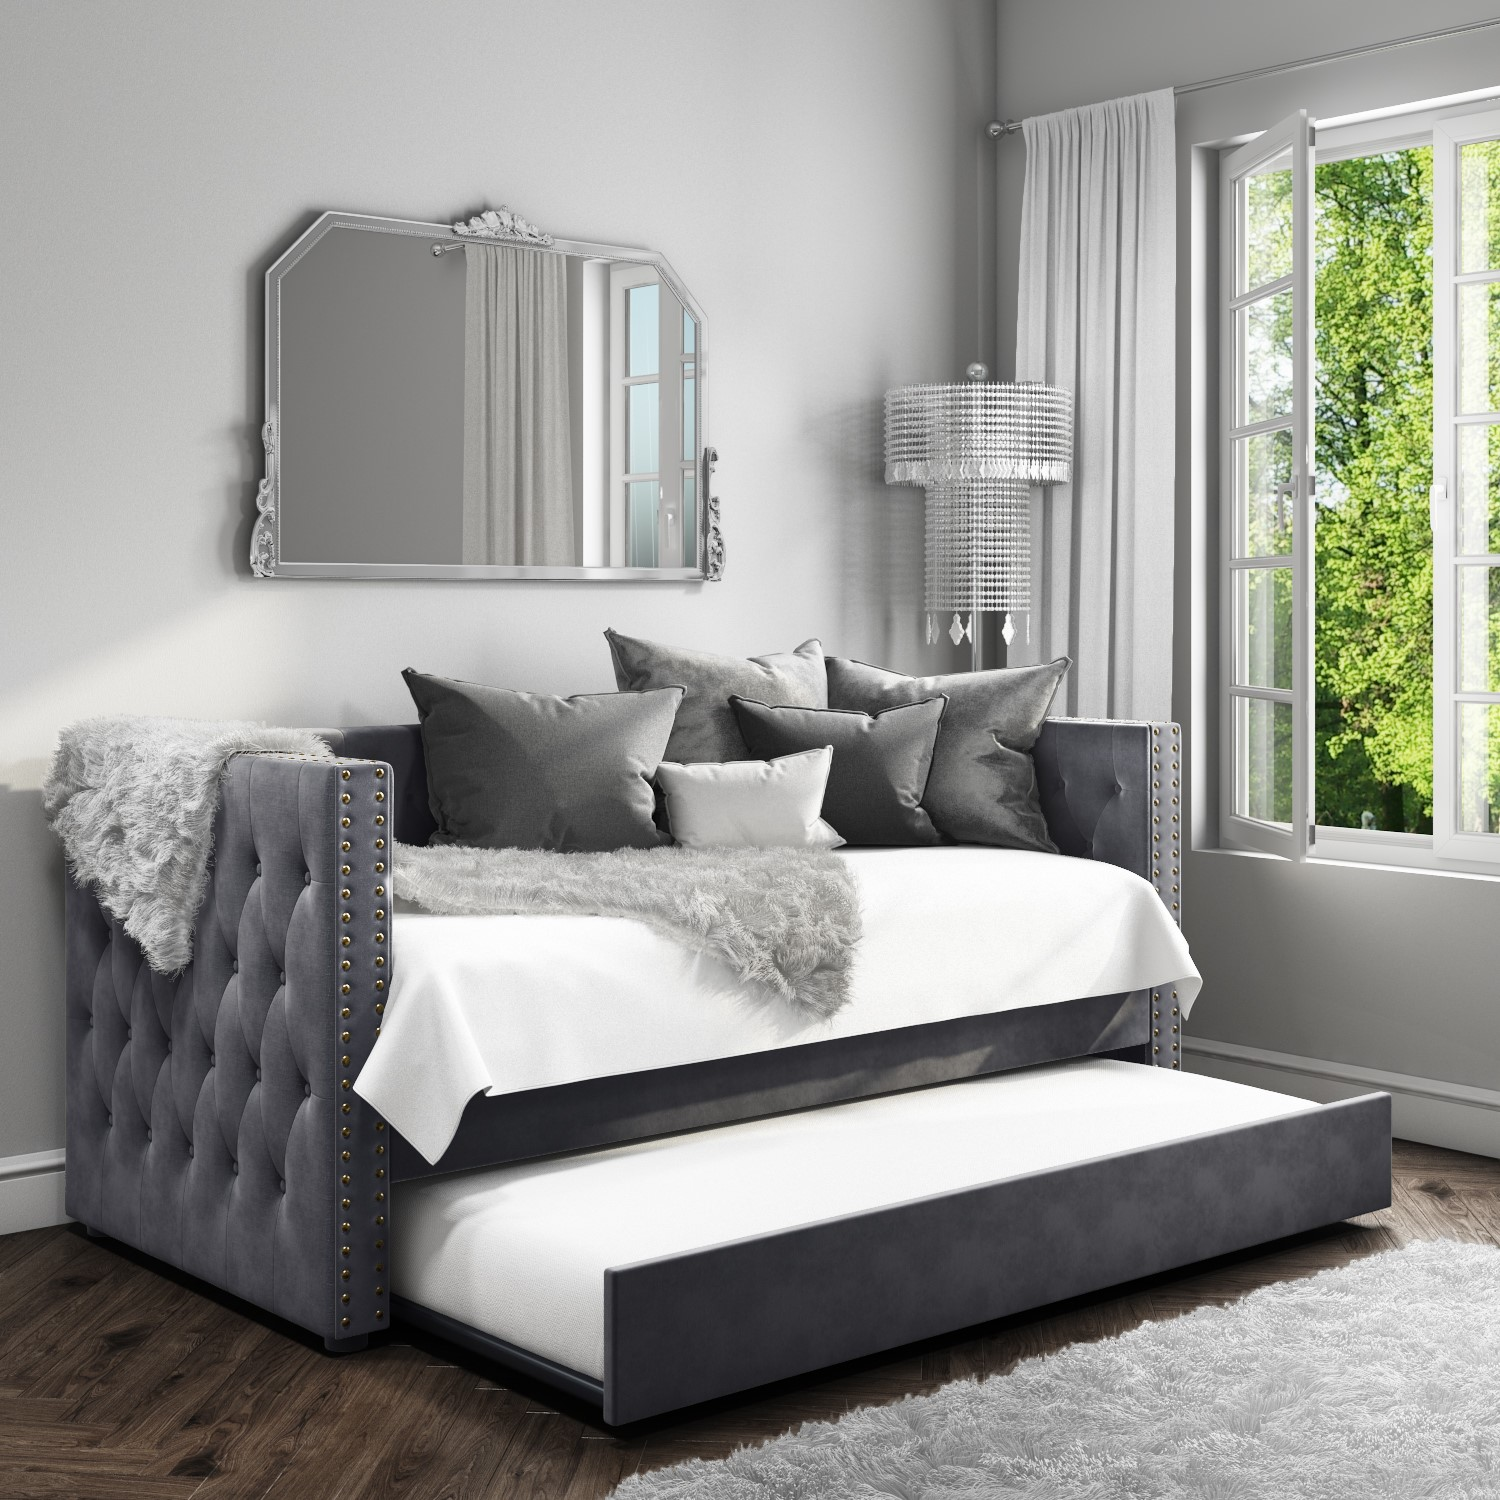 new product a408f 8f8d8 Details about Sacha Velvet Day Bed Frame in Anthracite Grey - Trundle Bed  Included